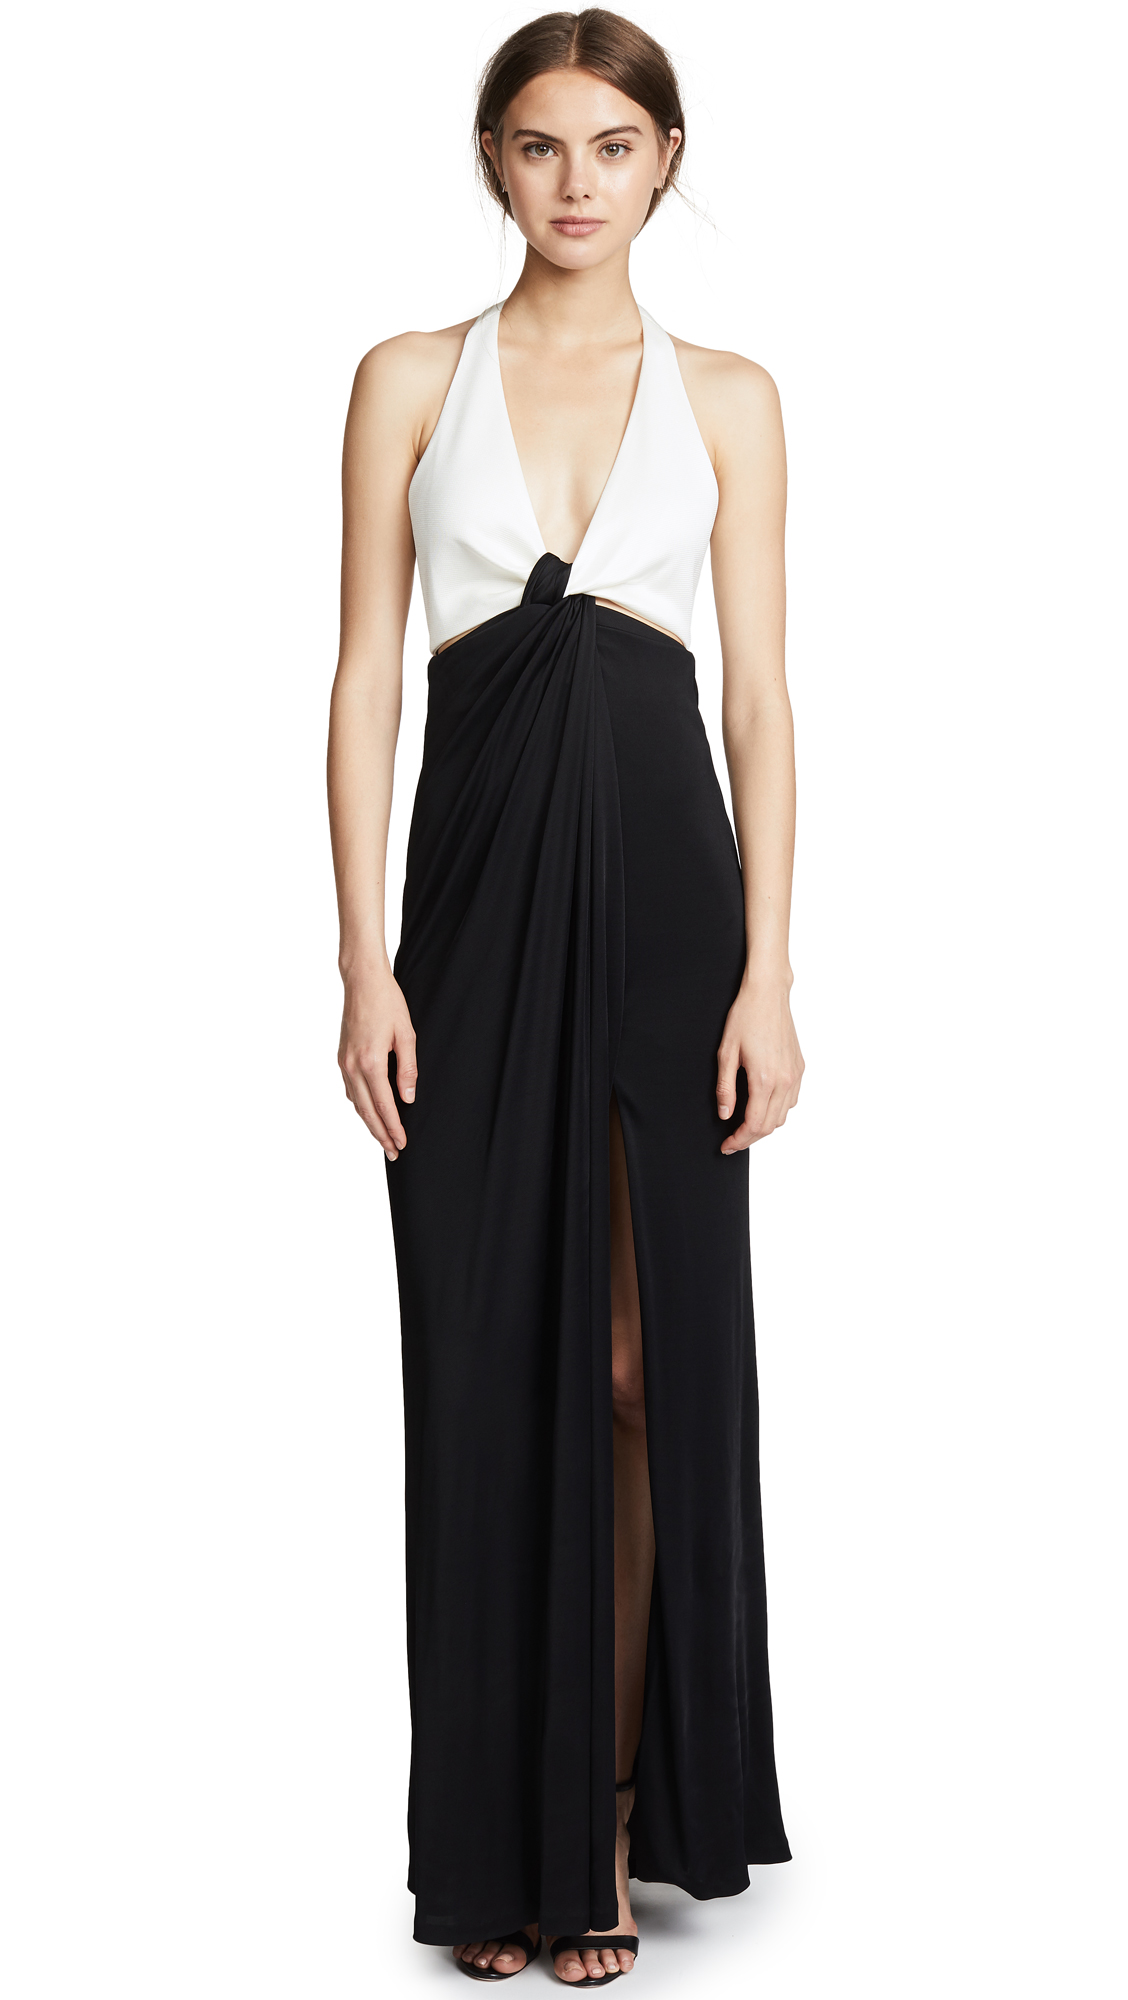 Galvan London Eclipse Gown In White/Black